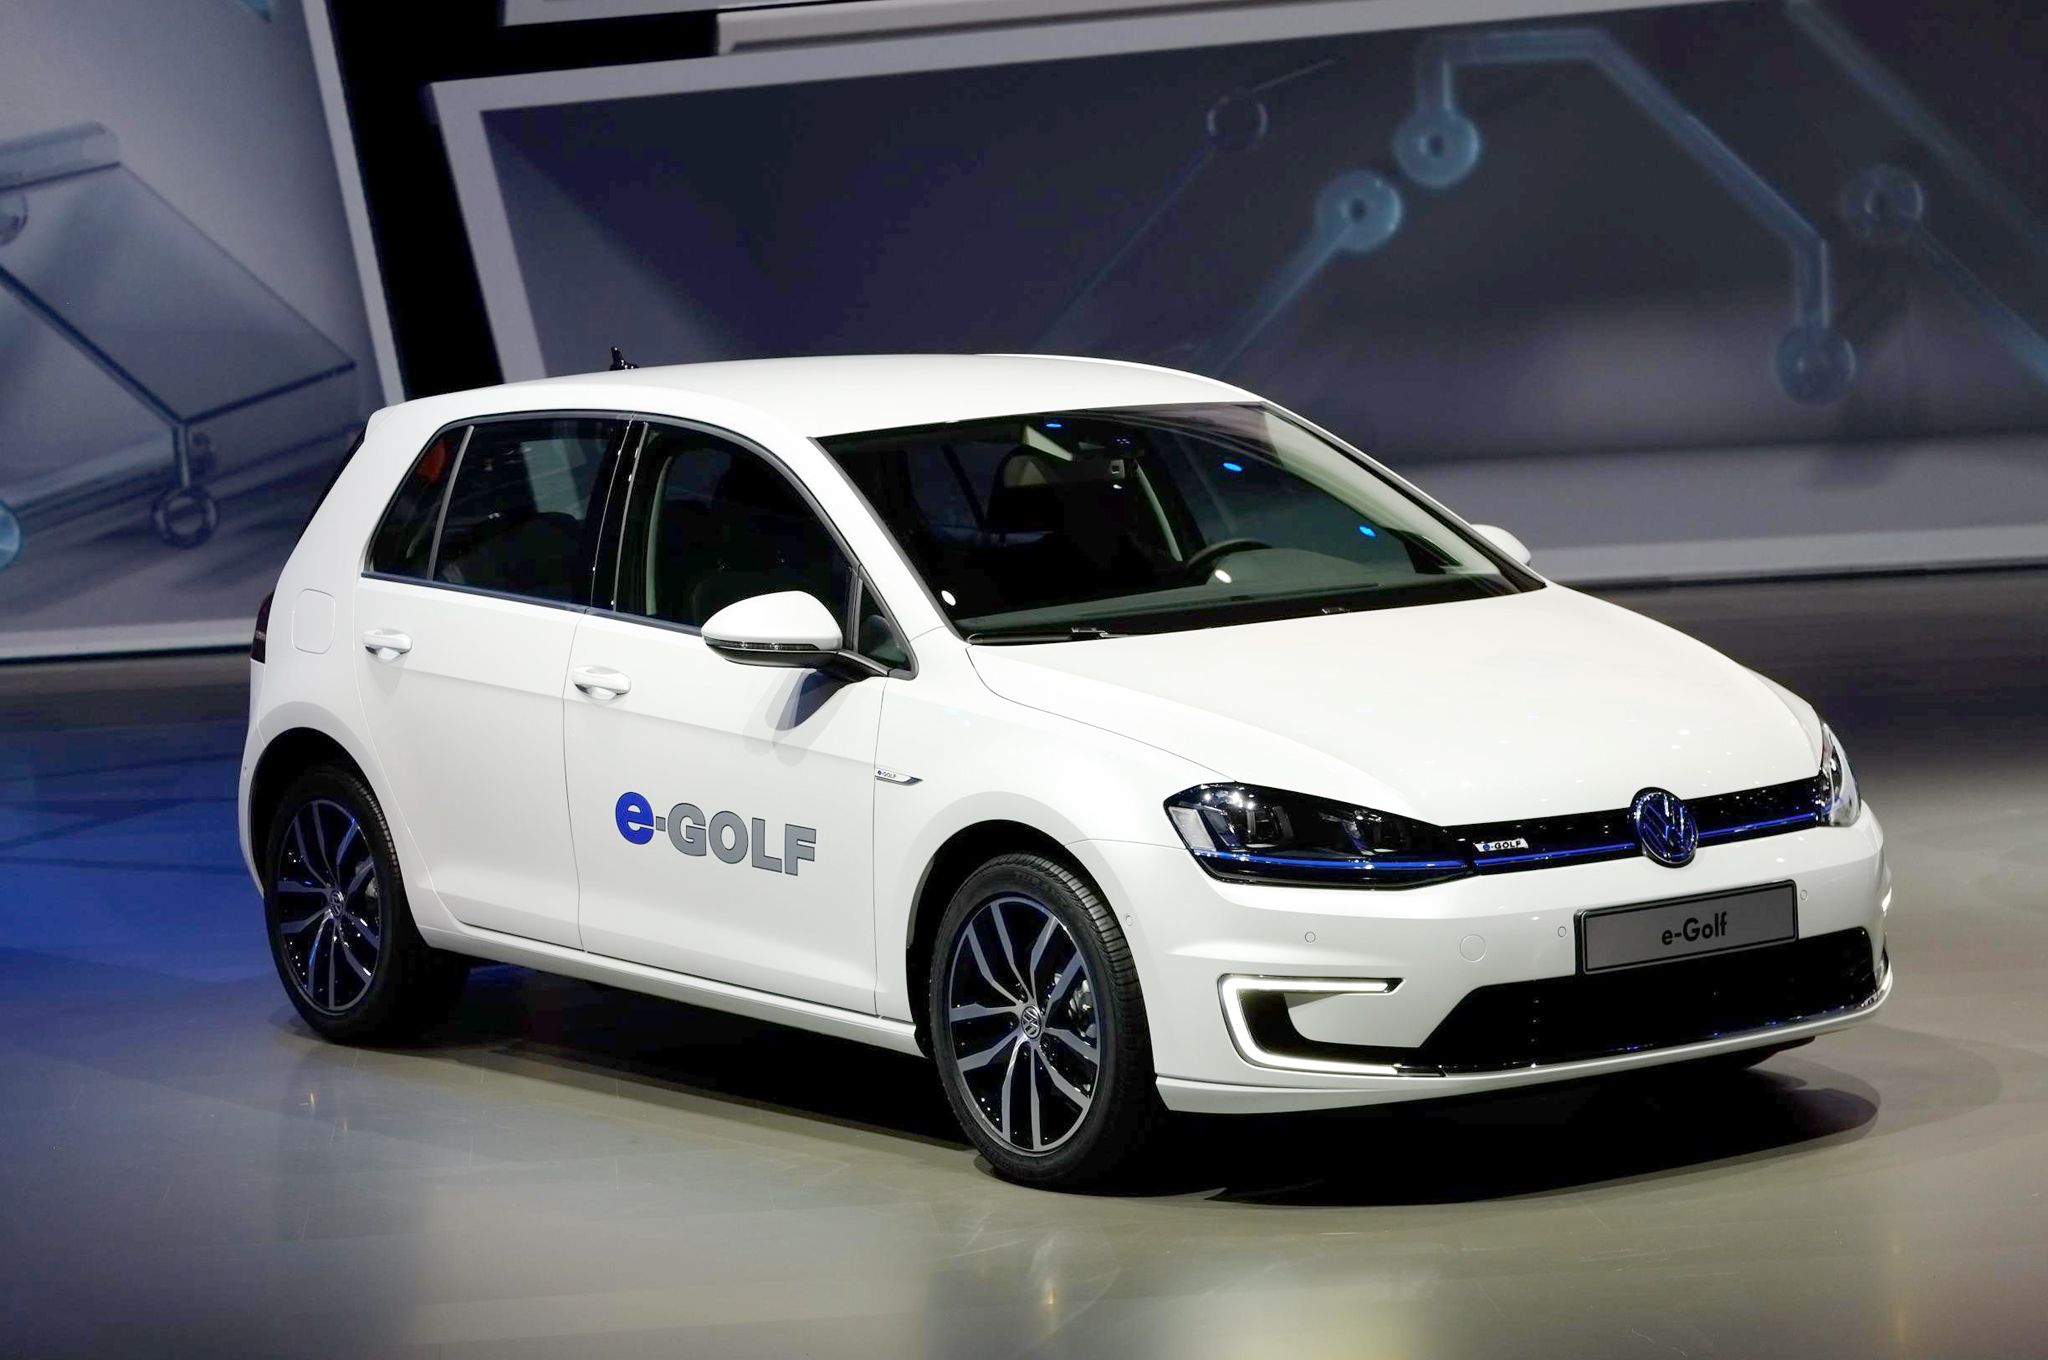 ces 2016 volkswagen introduces e golf touch vehicle comes with gesture controls lowyat net. Black Bedroom Furniture Sets. Home Design Ideas